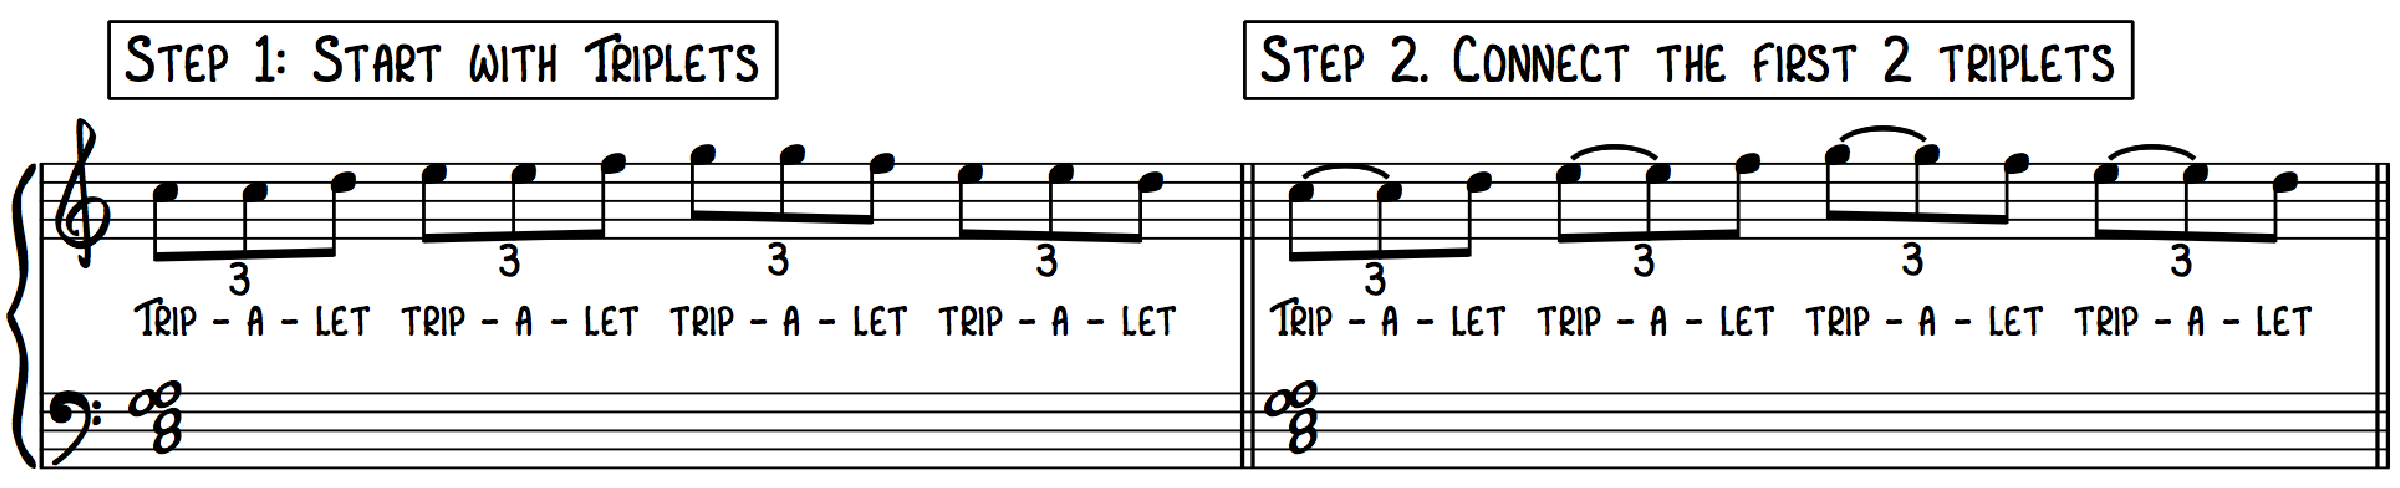 Swing Notation in 3 steps